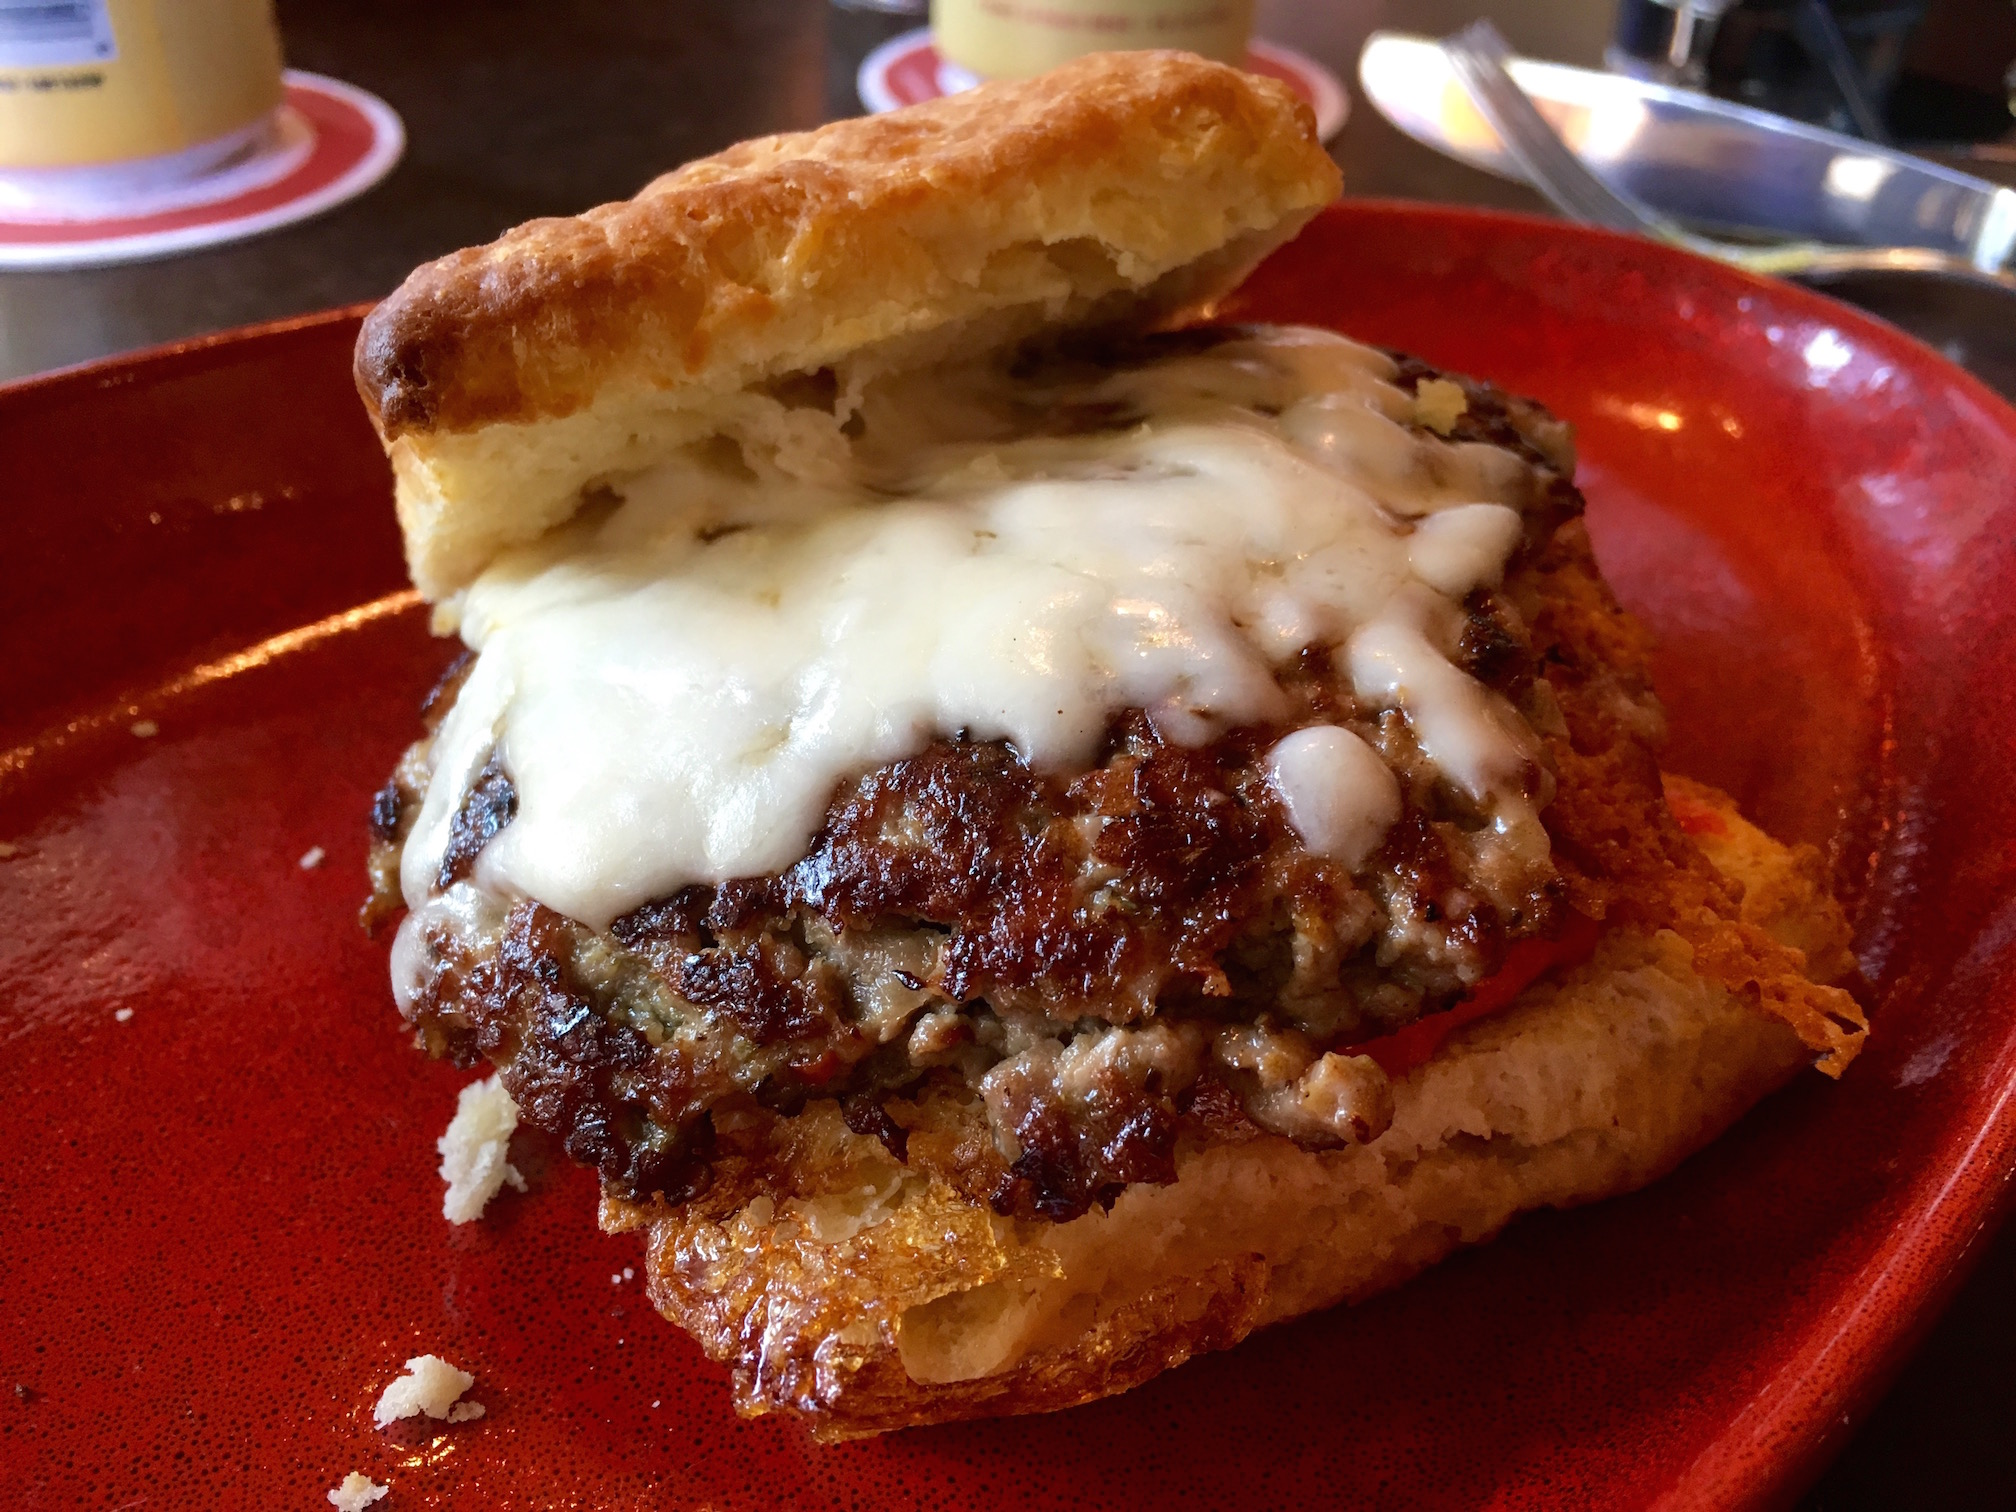 Fennel sausage biscuit at Serious Pie & Biscuit